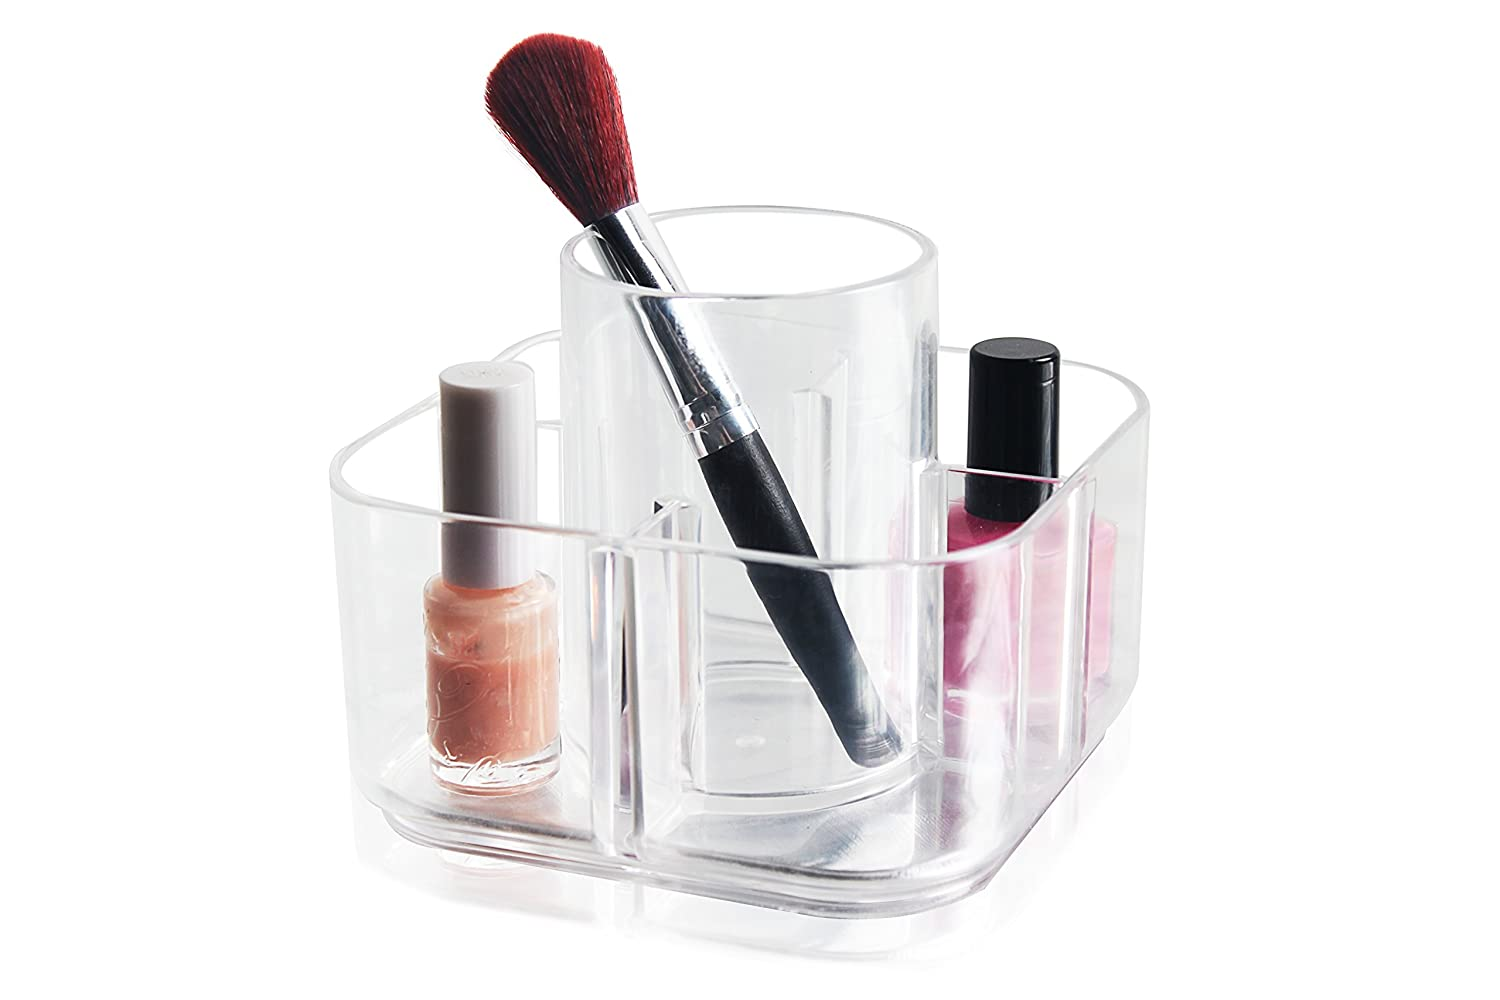 Premium Clear Acrylic Makeup Brush Desktop Storage Organizer, 5 Compartments Acrylic Cosmetic Organizer,1pc Pack